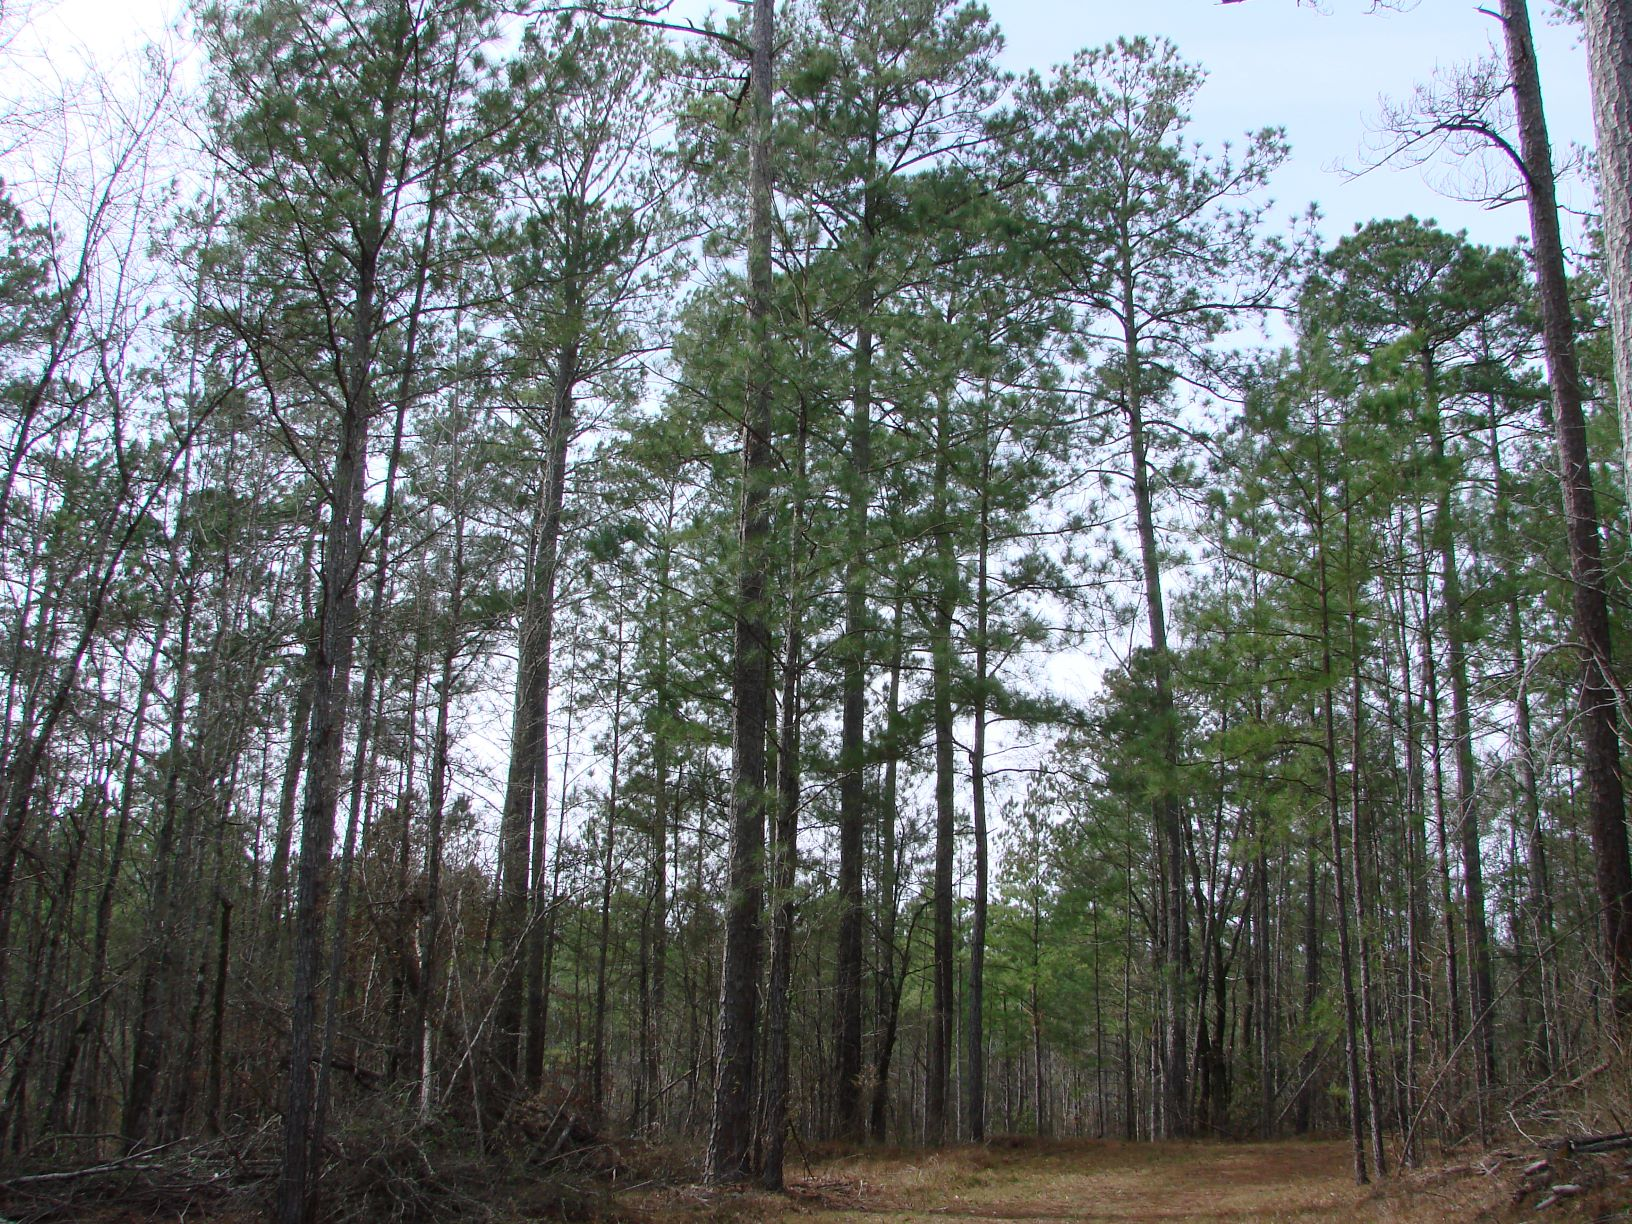 Significant timber value on the property.  Mature loblolly pine plantation